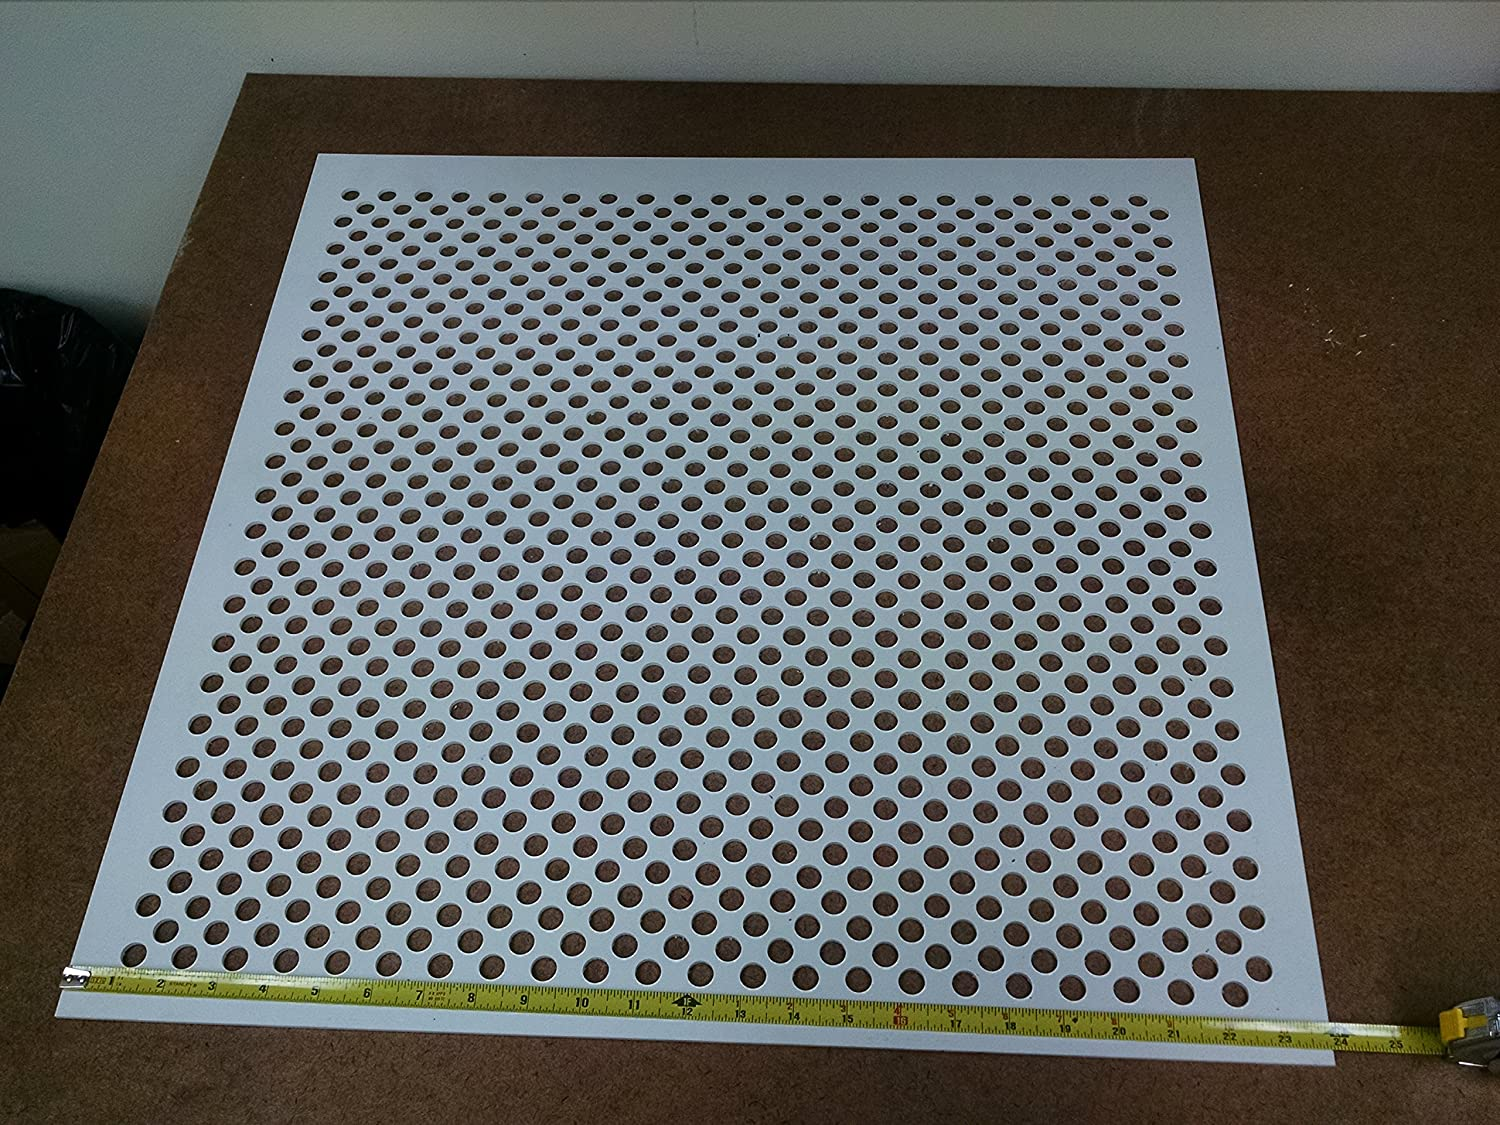 Amazon white plastic perforated tilereturn with 12 amazon white plastic perforated tilereturn with 12 perforations 4994w 125 50 home kitchen doublecrazyfo Images